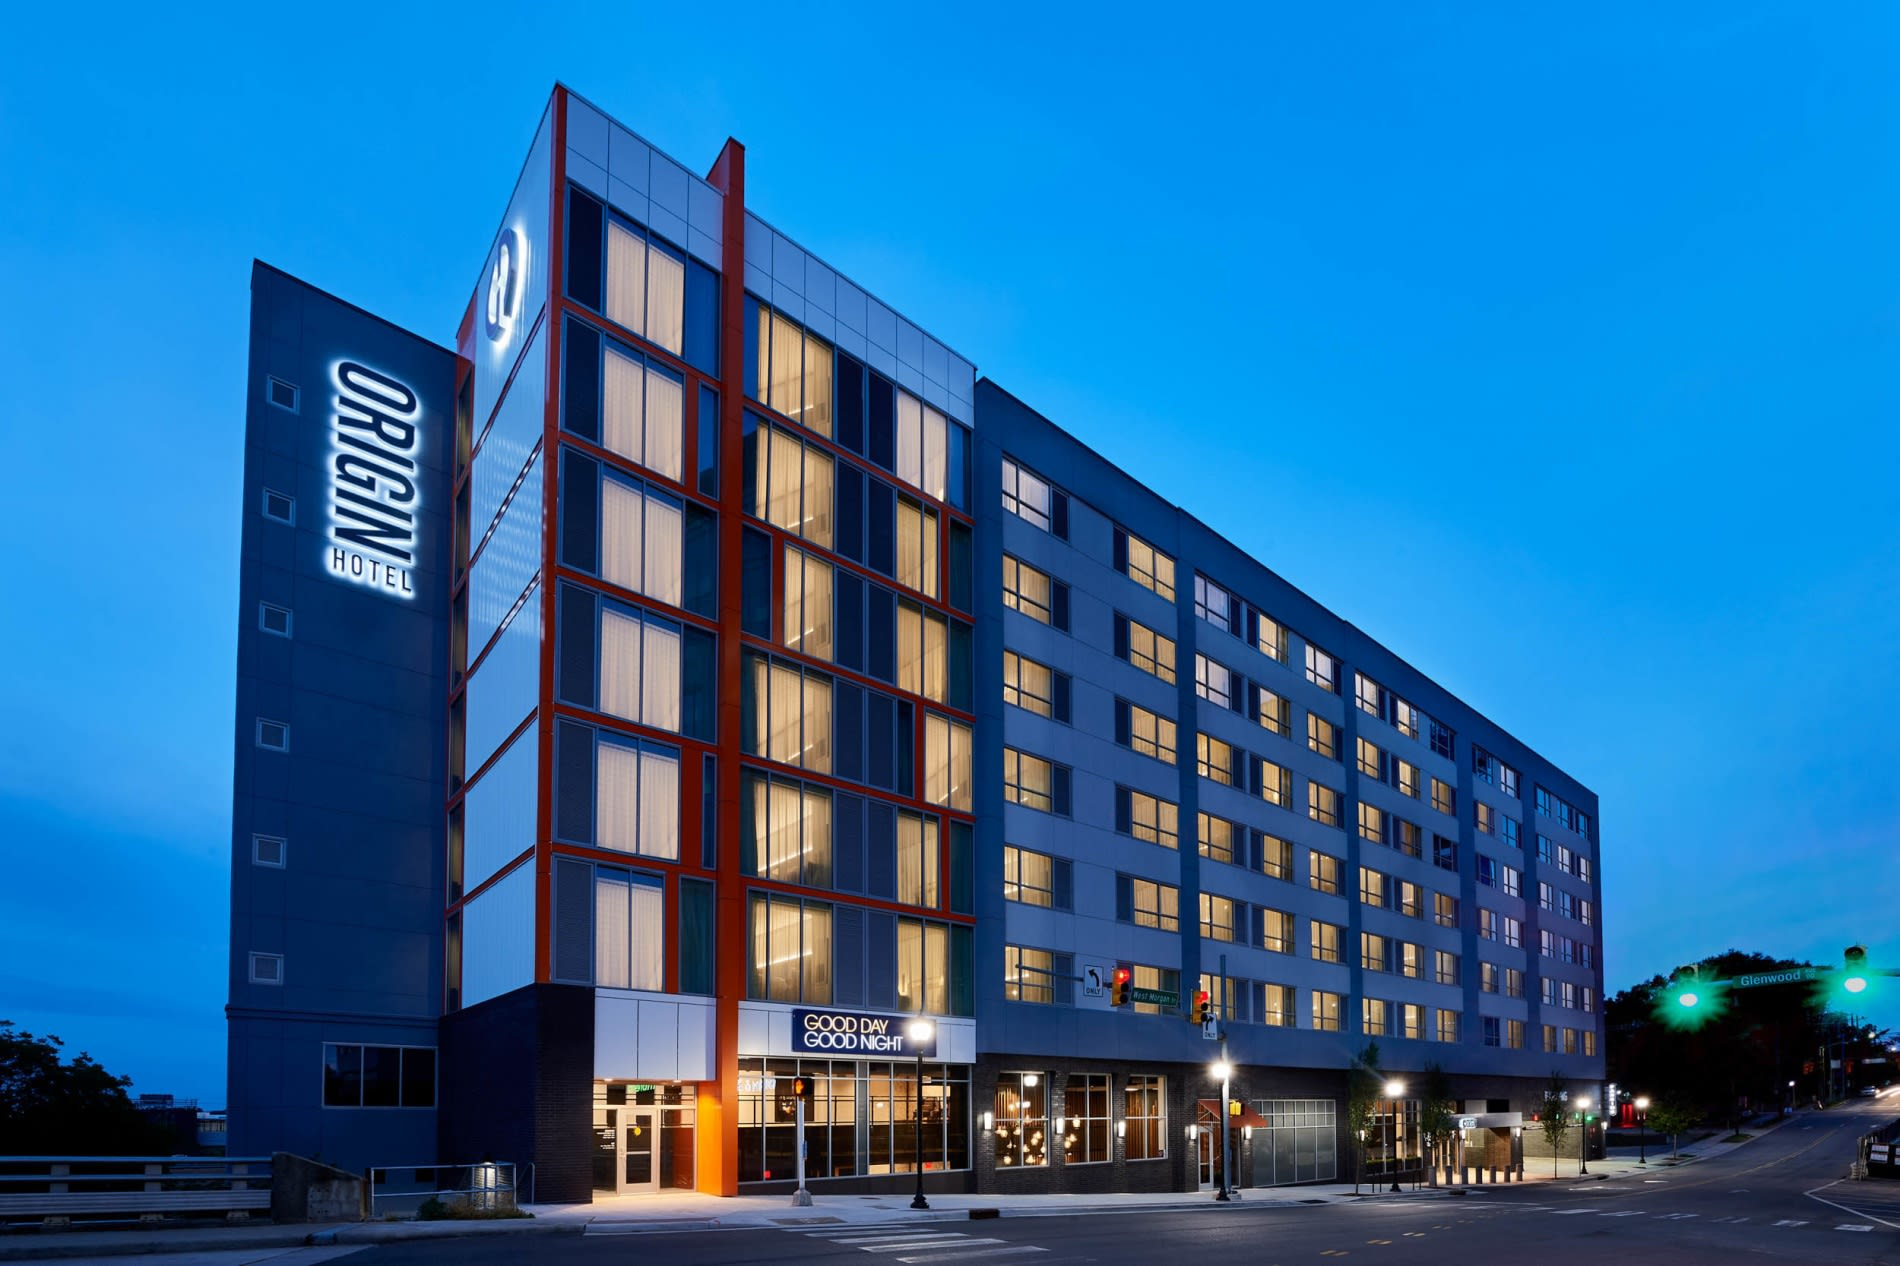 Wyndham announces seven hotels for its Namesake brand